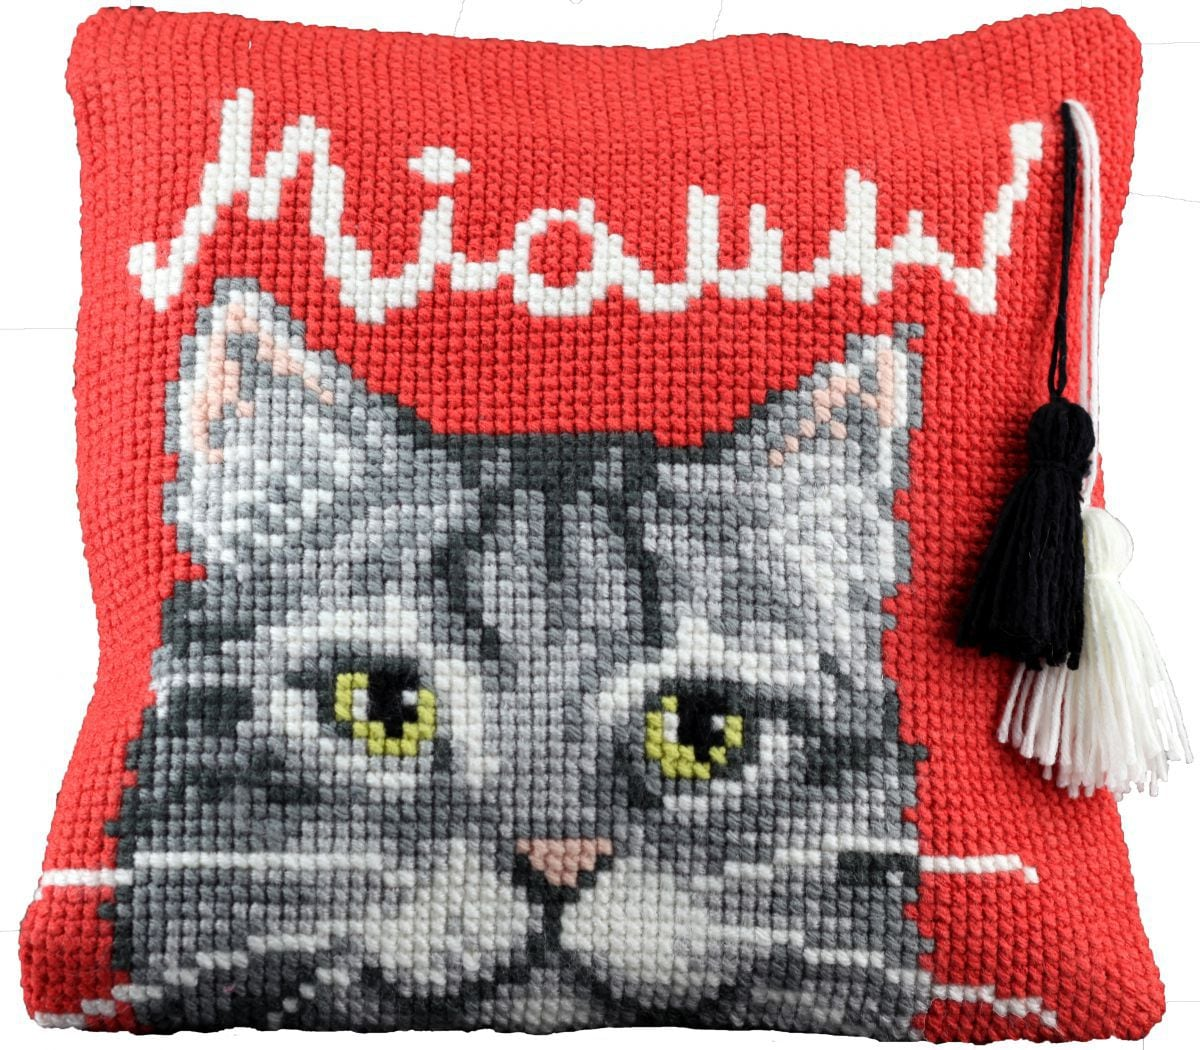 cross stitch cushion playing kittenprinted